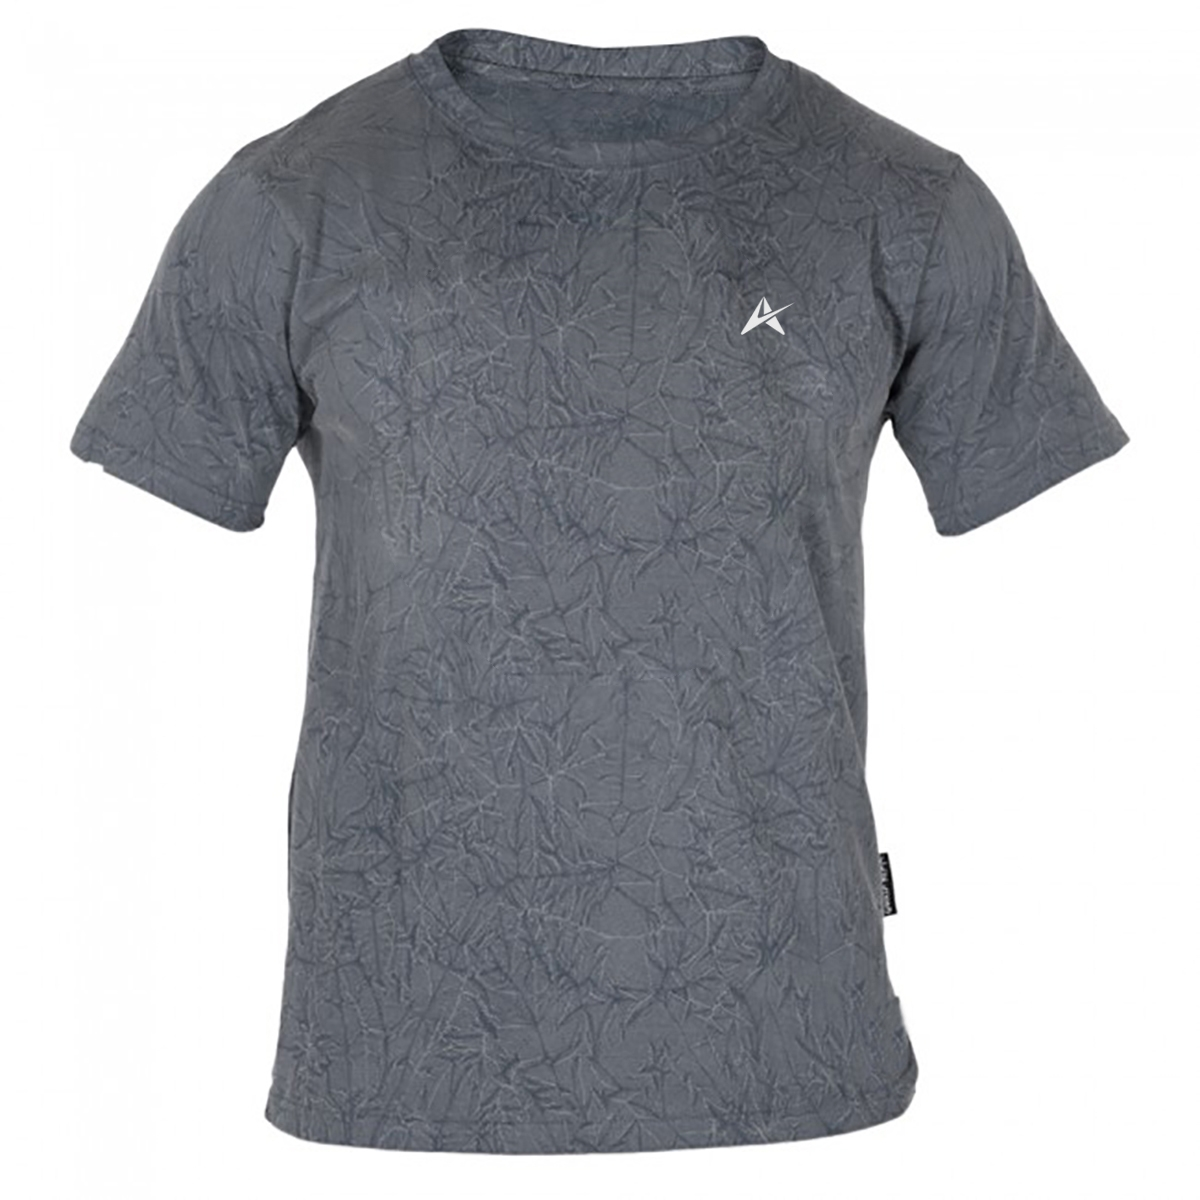 Plain Men's Cotton Crew neck T-Shirt AI-003